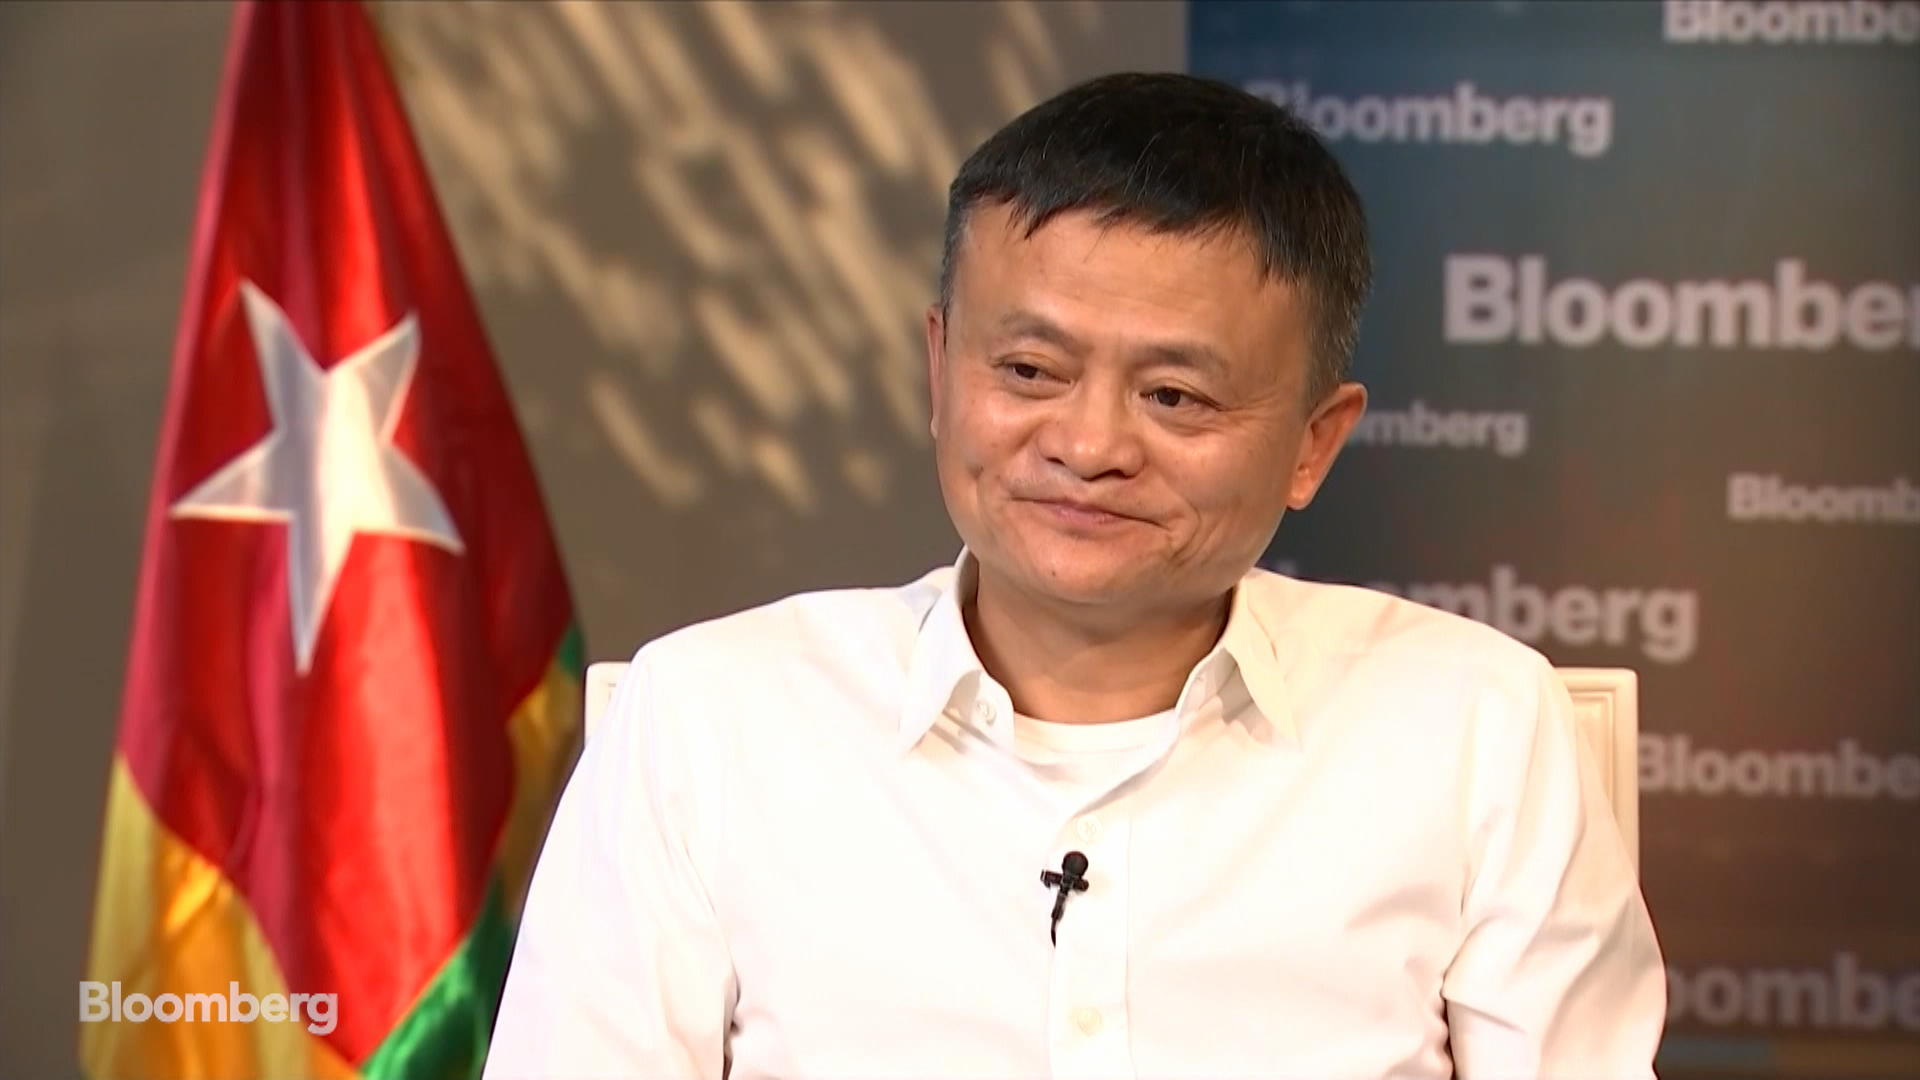 Jack Ma on Helping Entrepreneurs in Africa, U.S.-China Trade War, Alibaba Listing Ant Financial